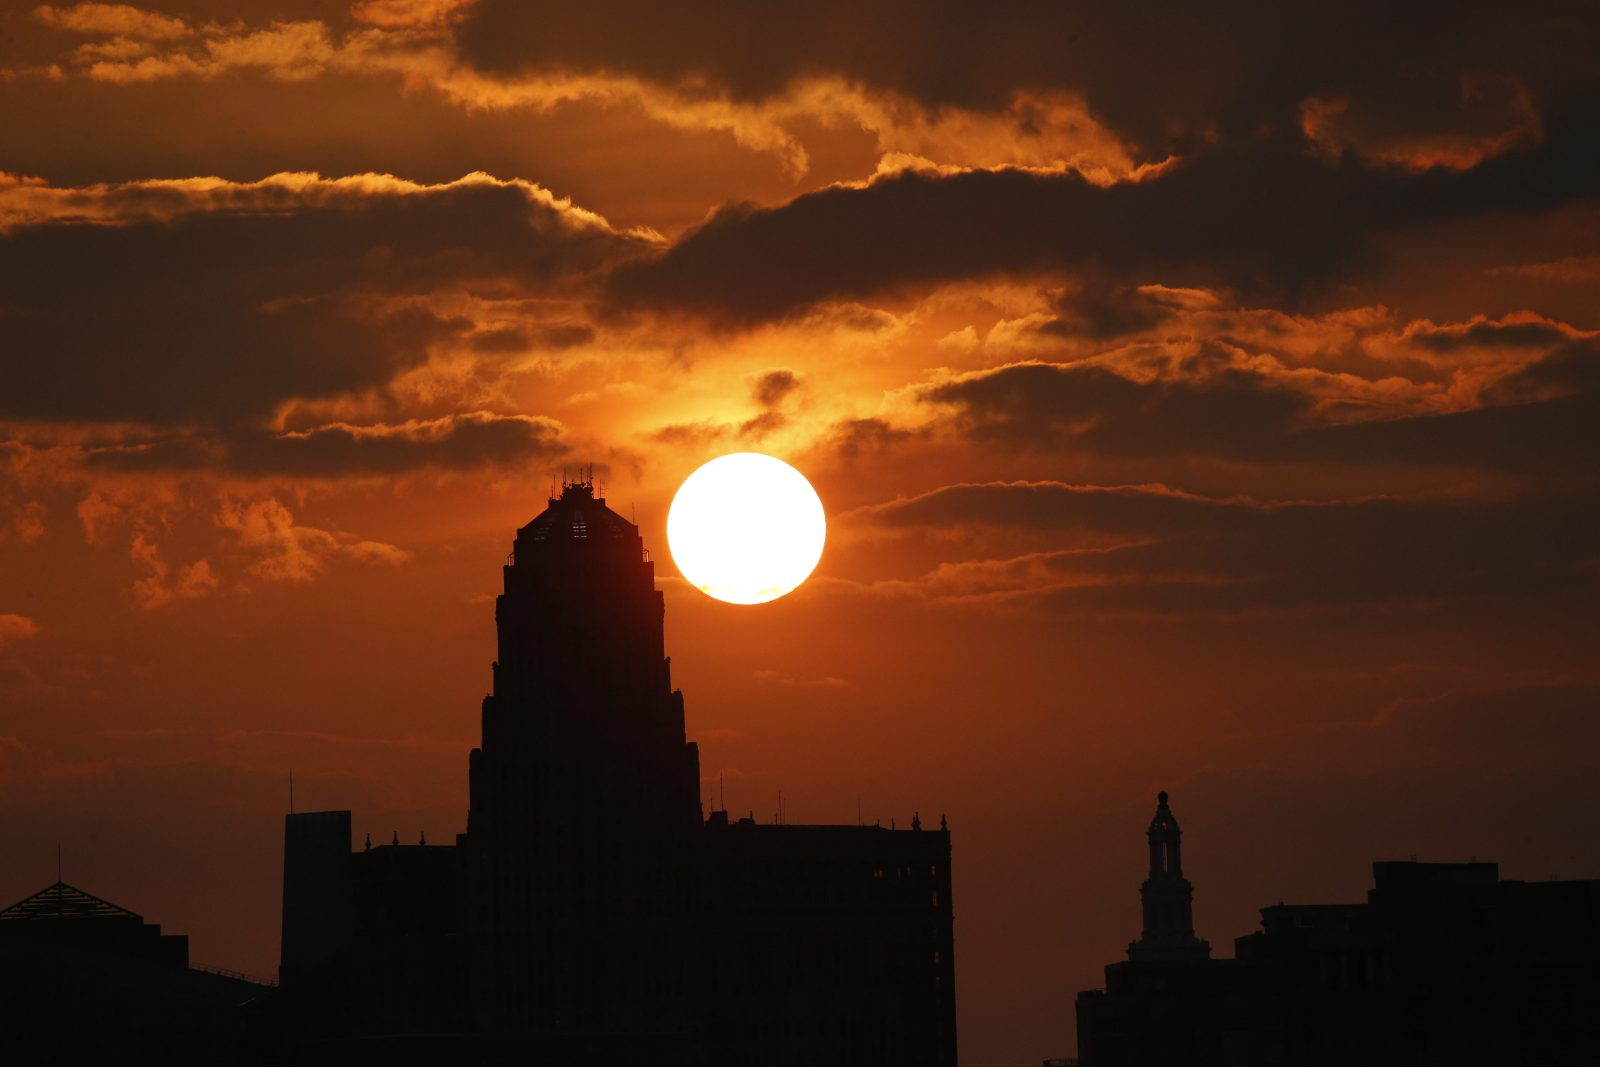 The sun rises behind the City of Buffalo, N.Y., Wednesday, July 6, 2016.  (Photo by Derek Gee)